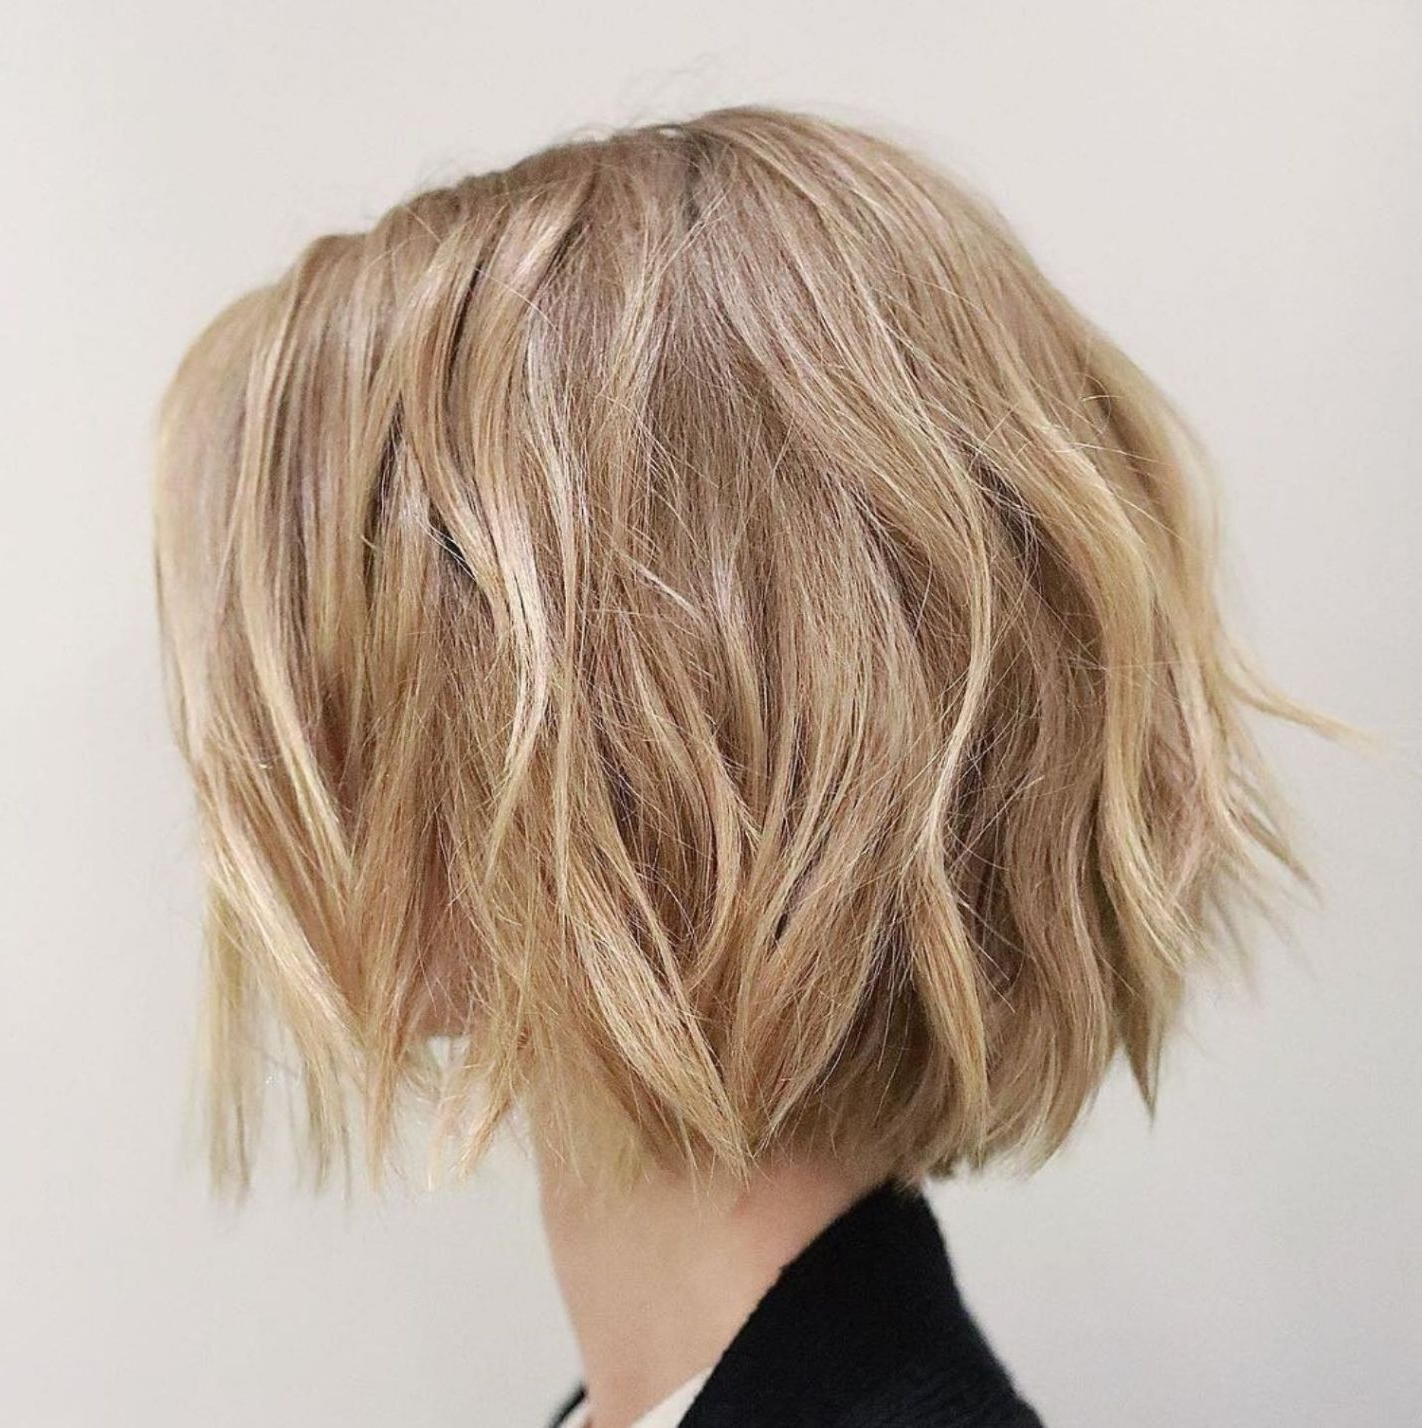 60 Messy Bob Hairstyles For Your Trendy Casual Looks | Messy For Choppy Bob Hairstyles With Blonde Ends (View 8 of 20)